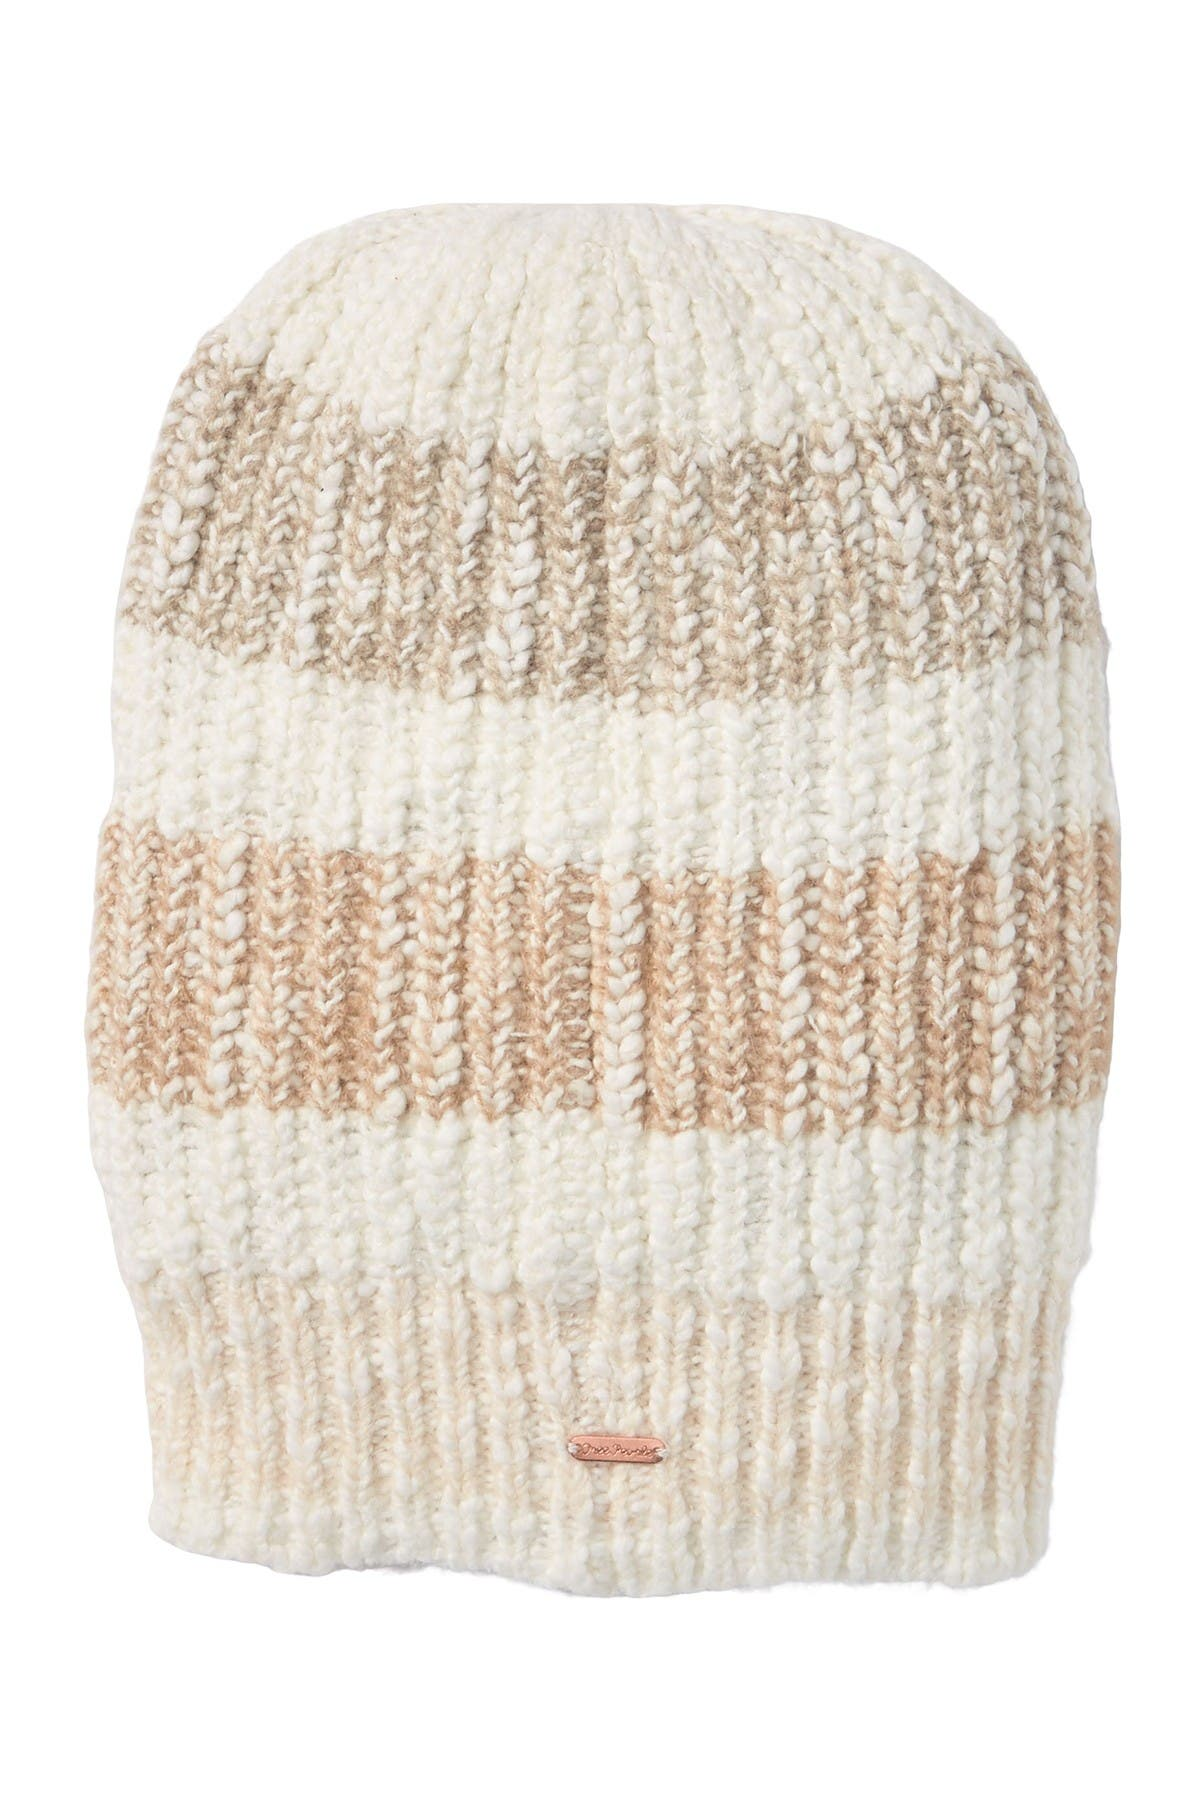 Image of Free People Cozy in Stripes Beanie